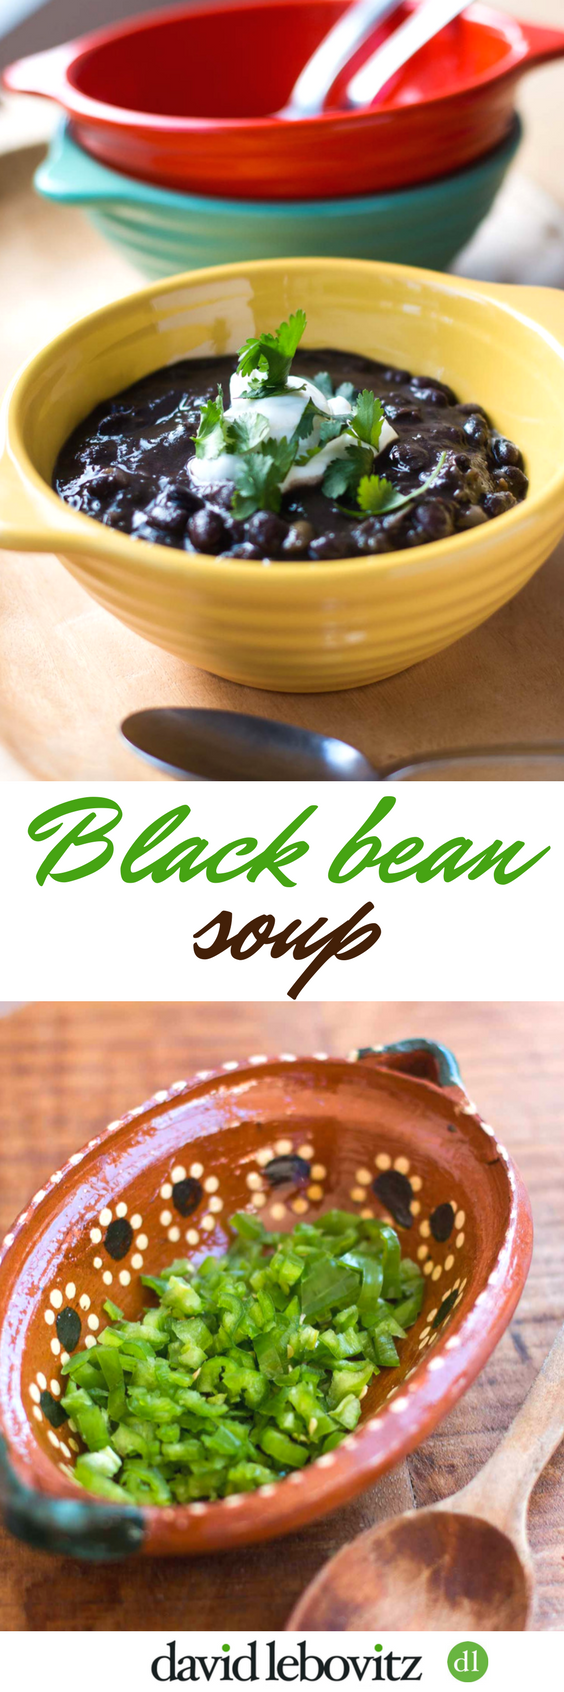 A hearty black bean soup recipe, perfect for warming up with a touch of spice and cool sour cream.